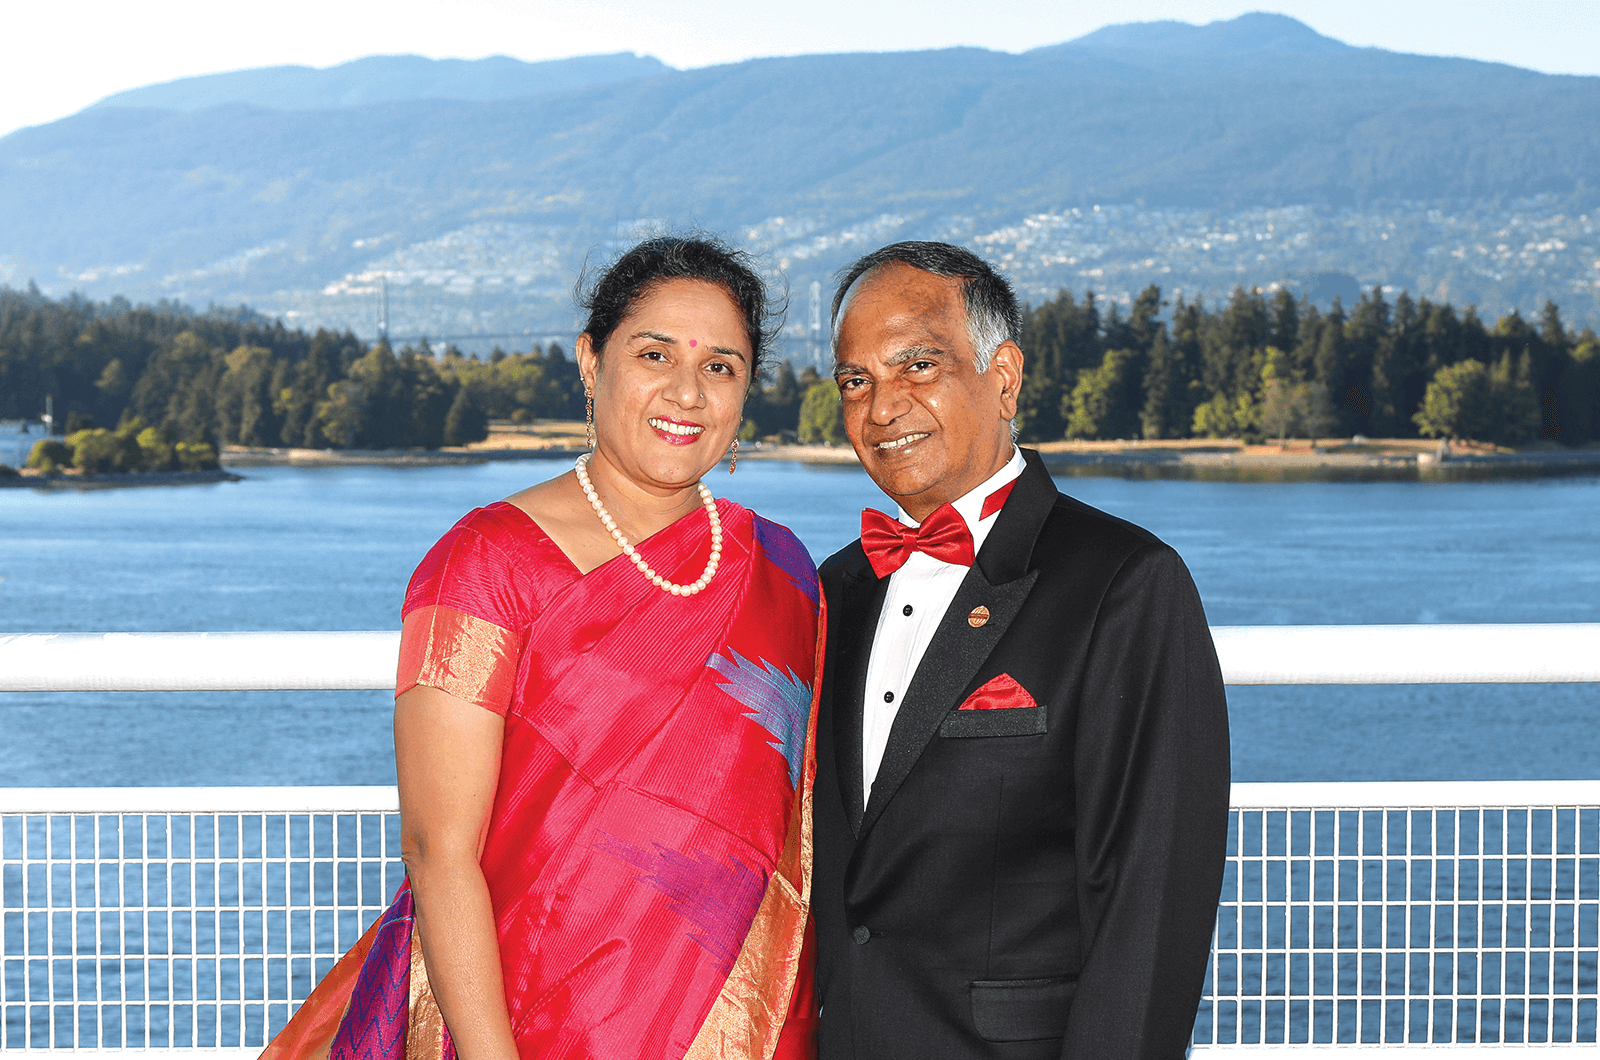 Menon and his wife, Kavita, attend the International Convention in Vancouver, Canada, in 2017.